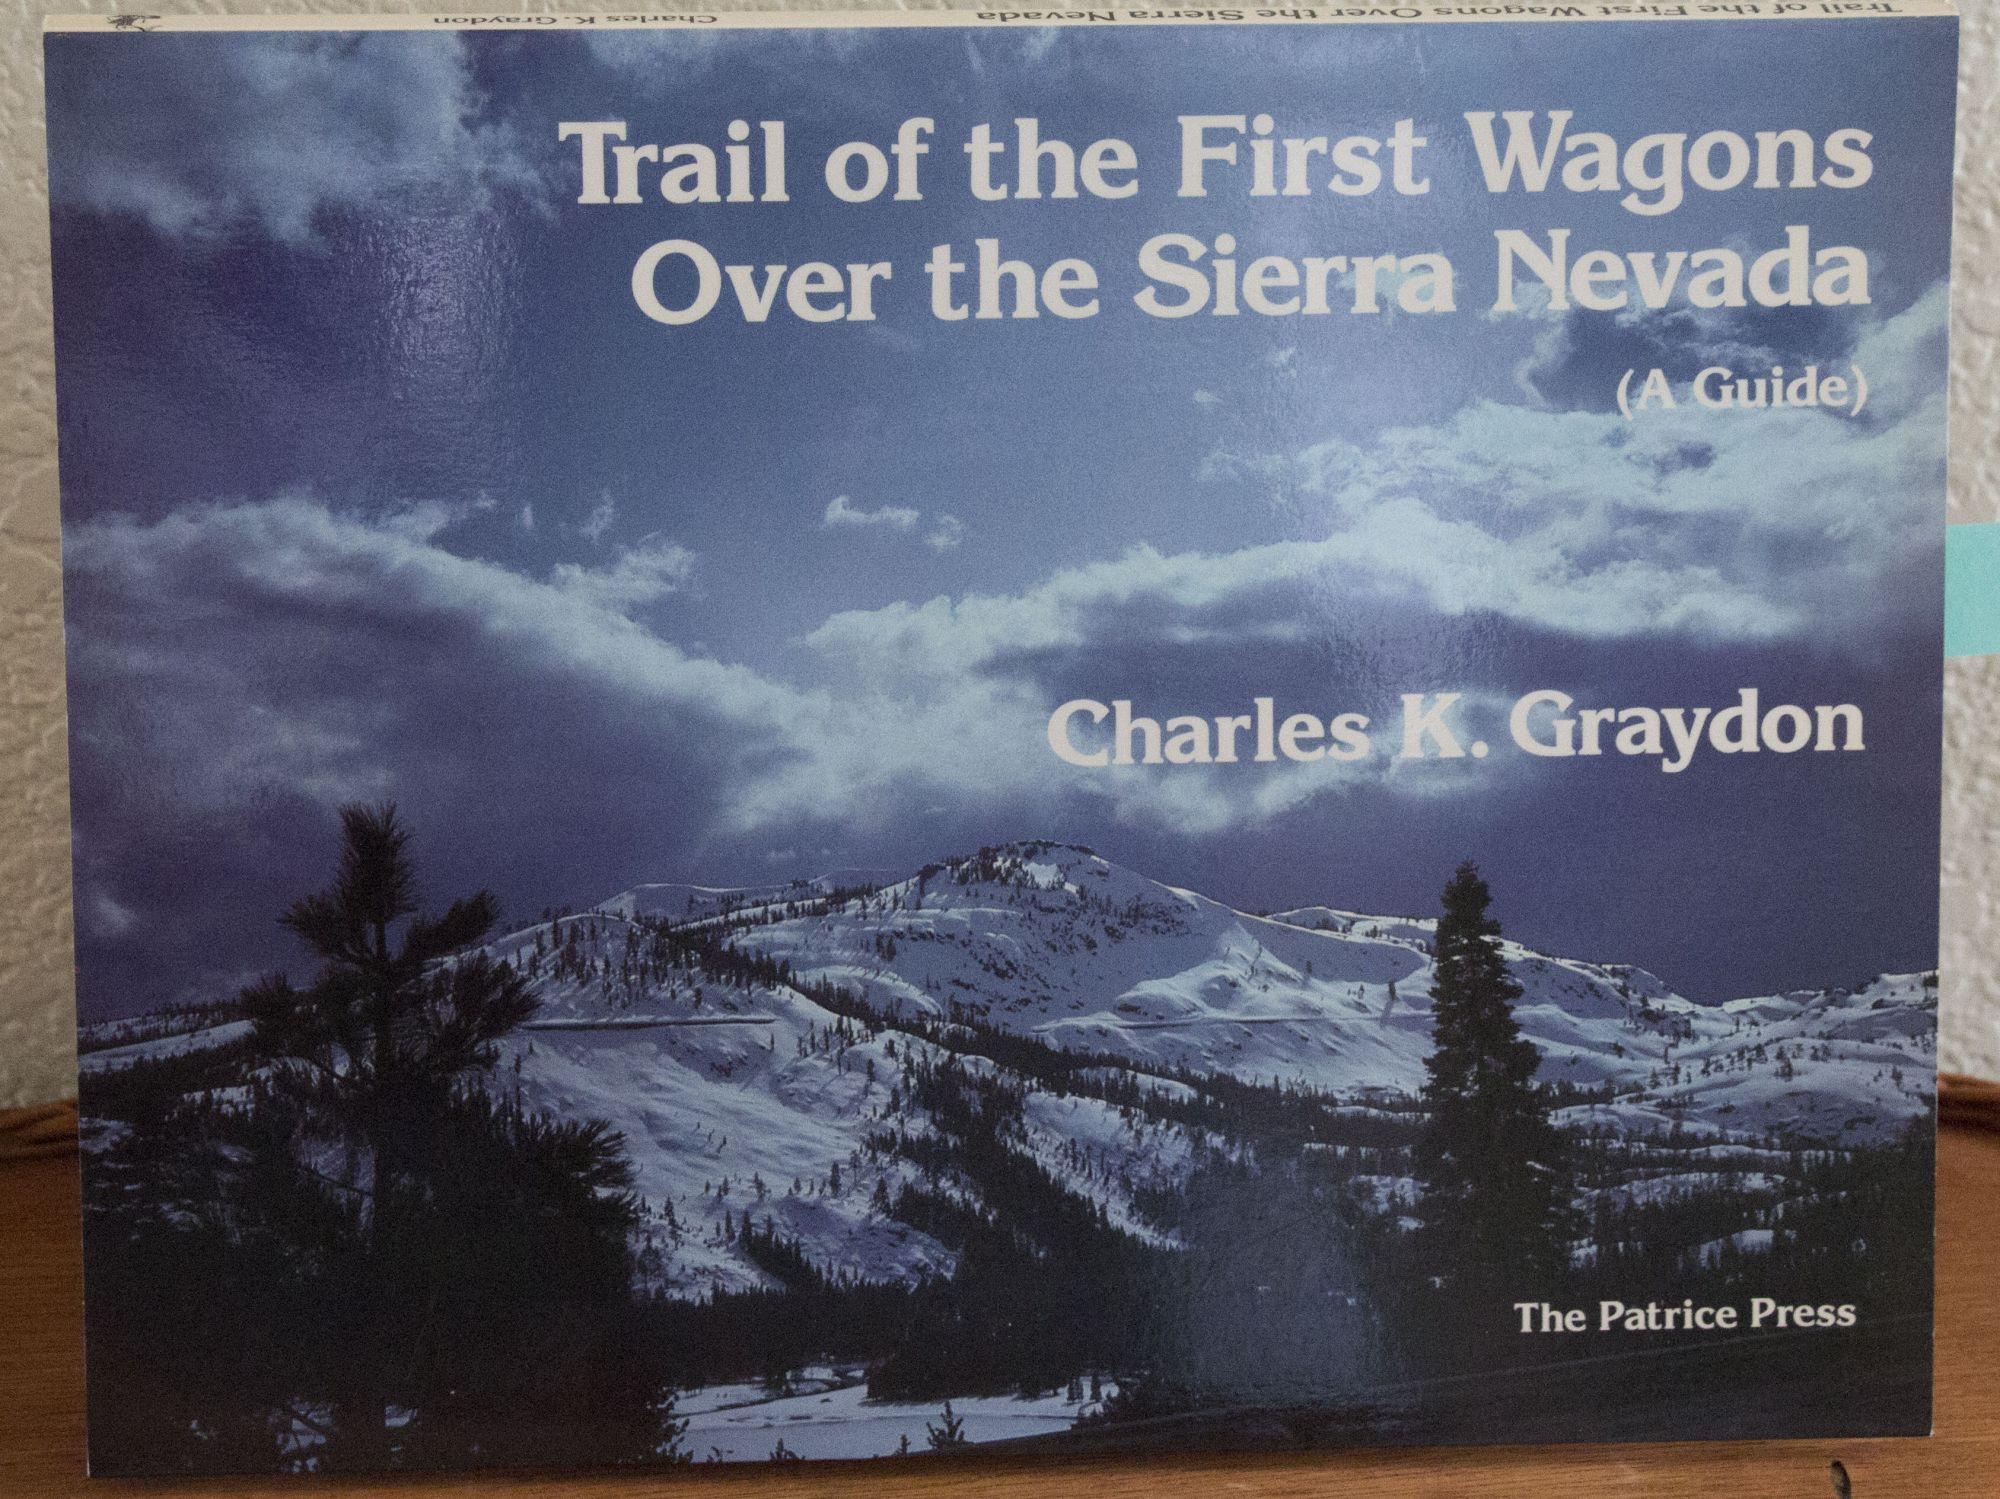 Trail of the First Wagons over the Sierra Nevada